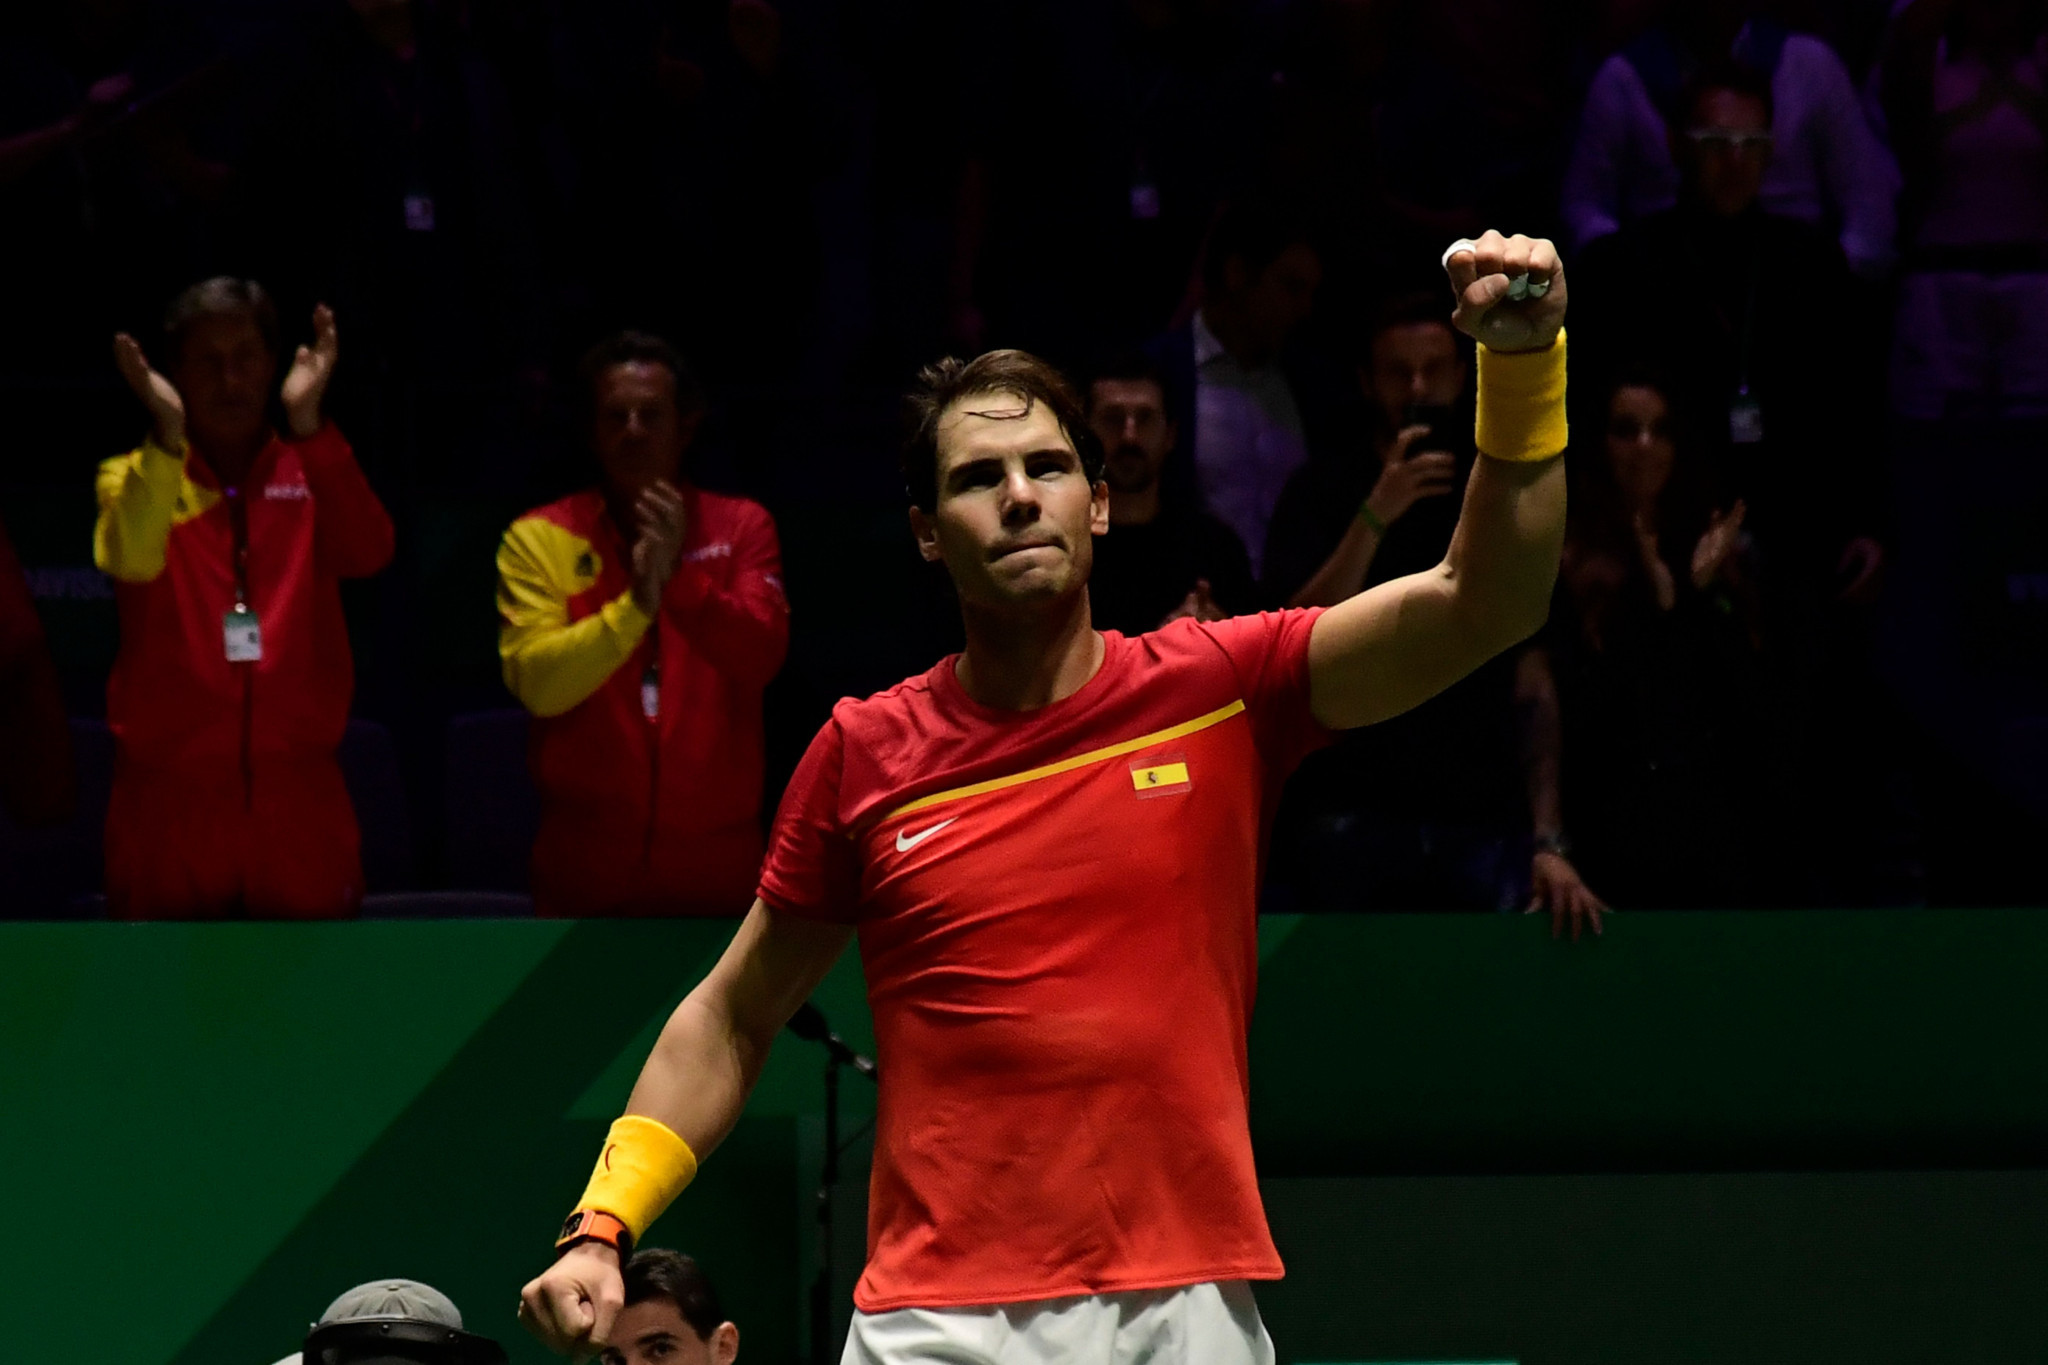 Croatia's Davis Cup reign ended by hosts Spain